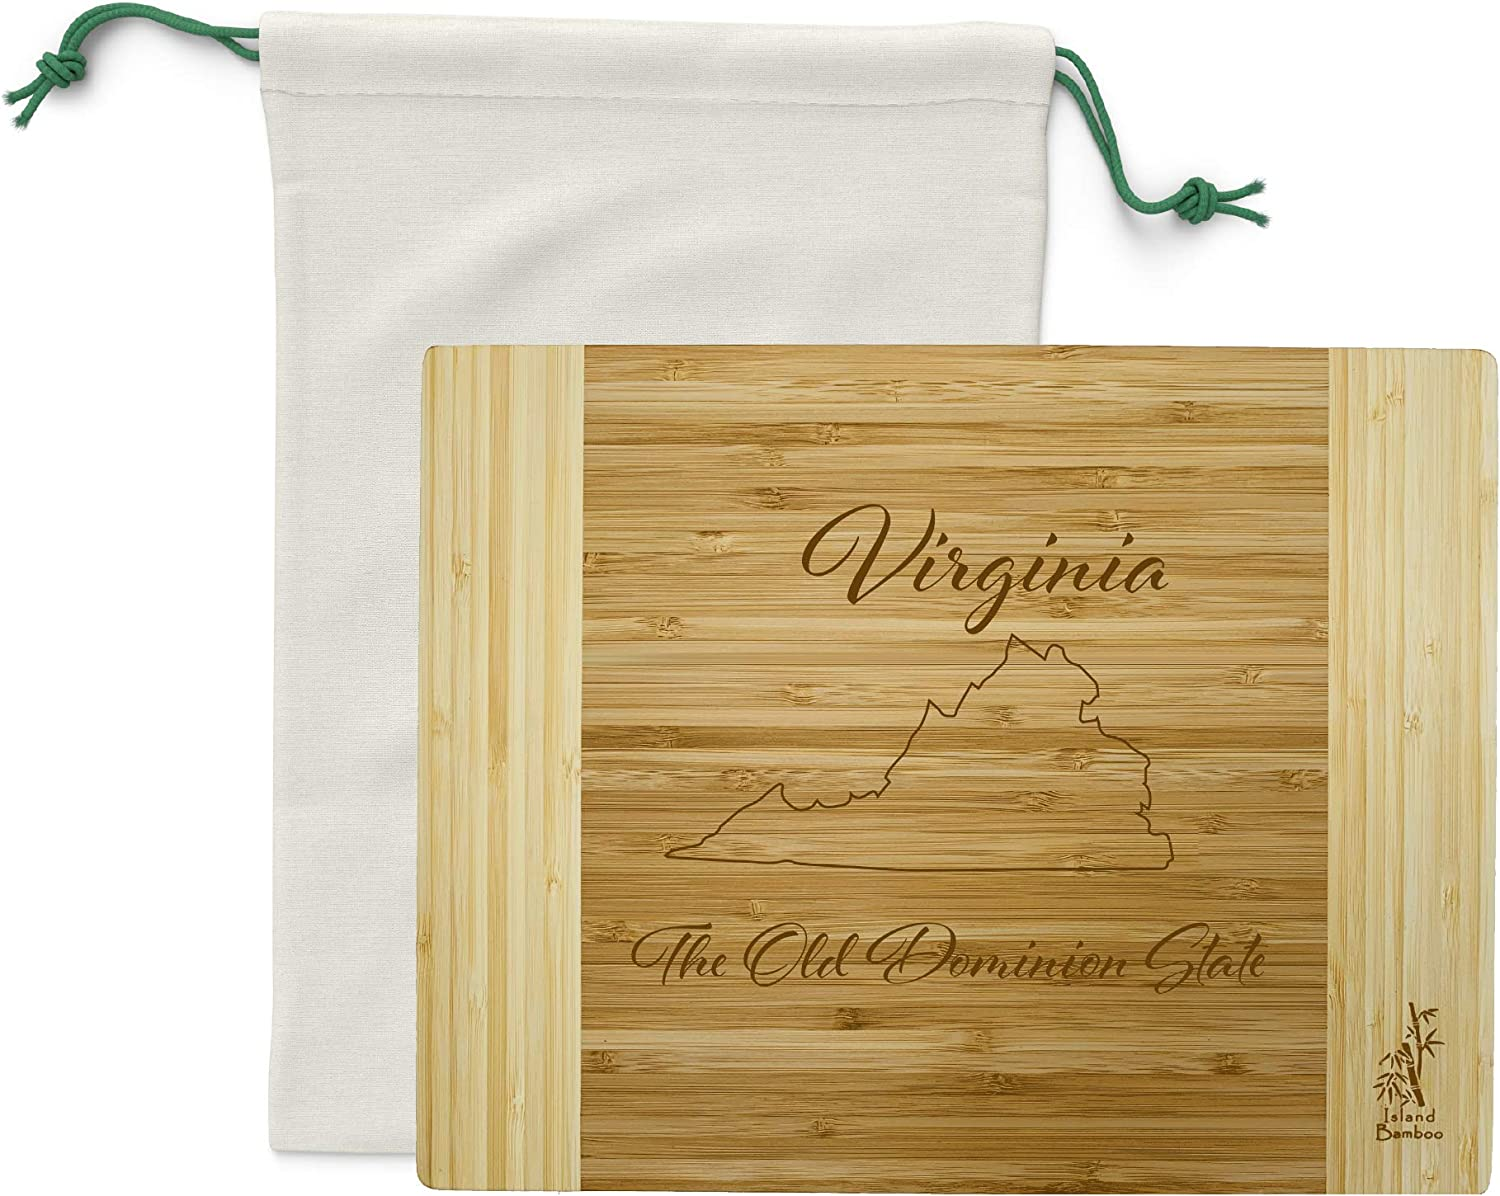 Island Bamboo USA Virginia Engraved State Cutting Board - Great for Kitchen Decor, Cheese Server, Personalized Charcuterie Board, Serving Platter, or Gifts for the Home with Canvas Bag